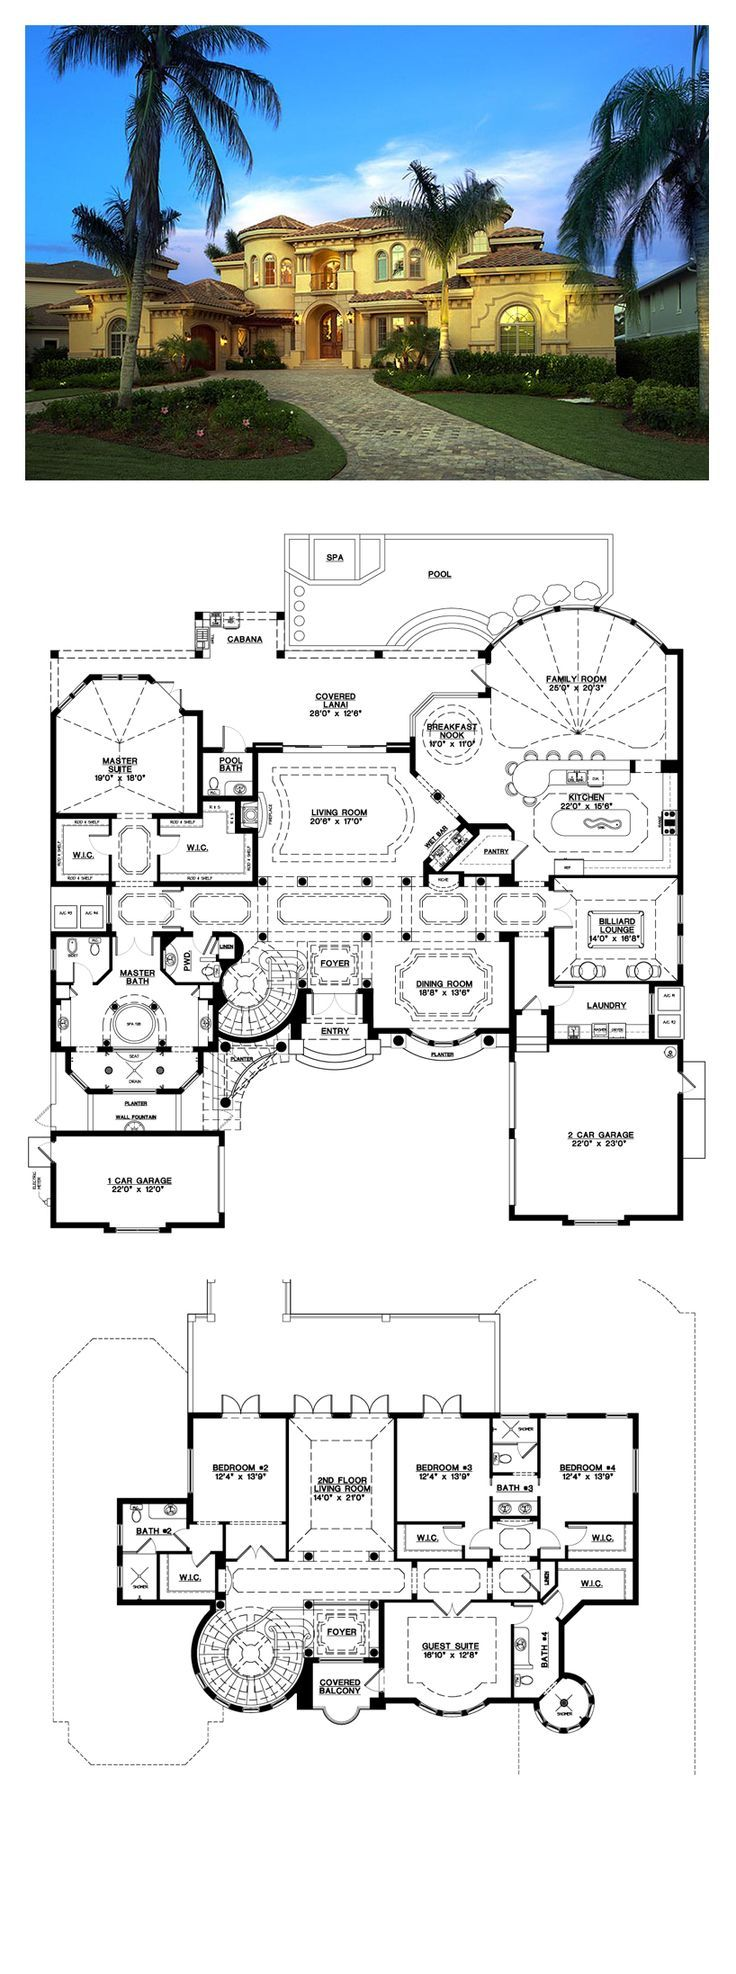 Florida Style COOL House Plan ID: chp-53040 | Total Living Area: 6045 sq. ft., 5… – Florida Style COOL House Plan ID: chp-53040 | Total Living Area: 6045 sq. ft., 5…